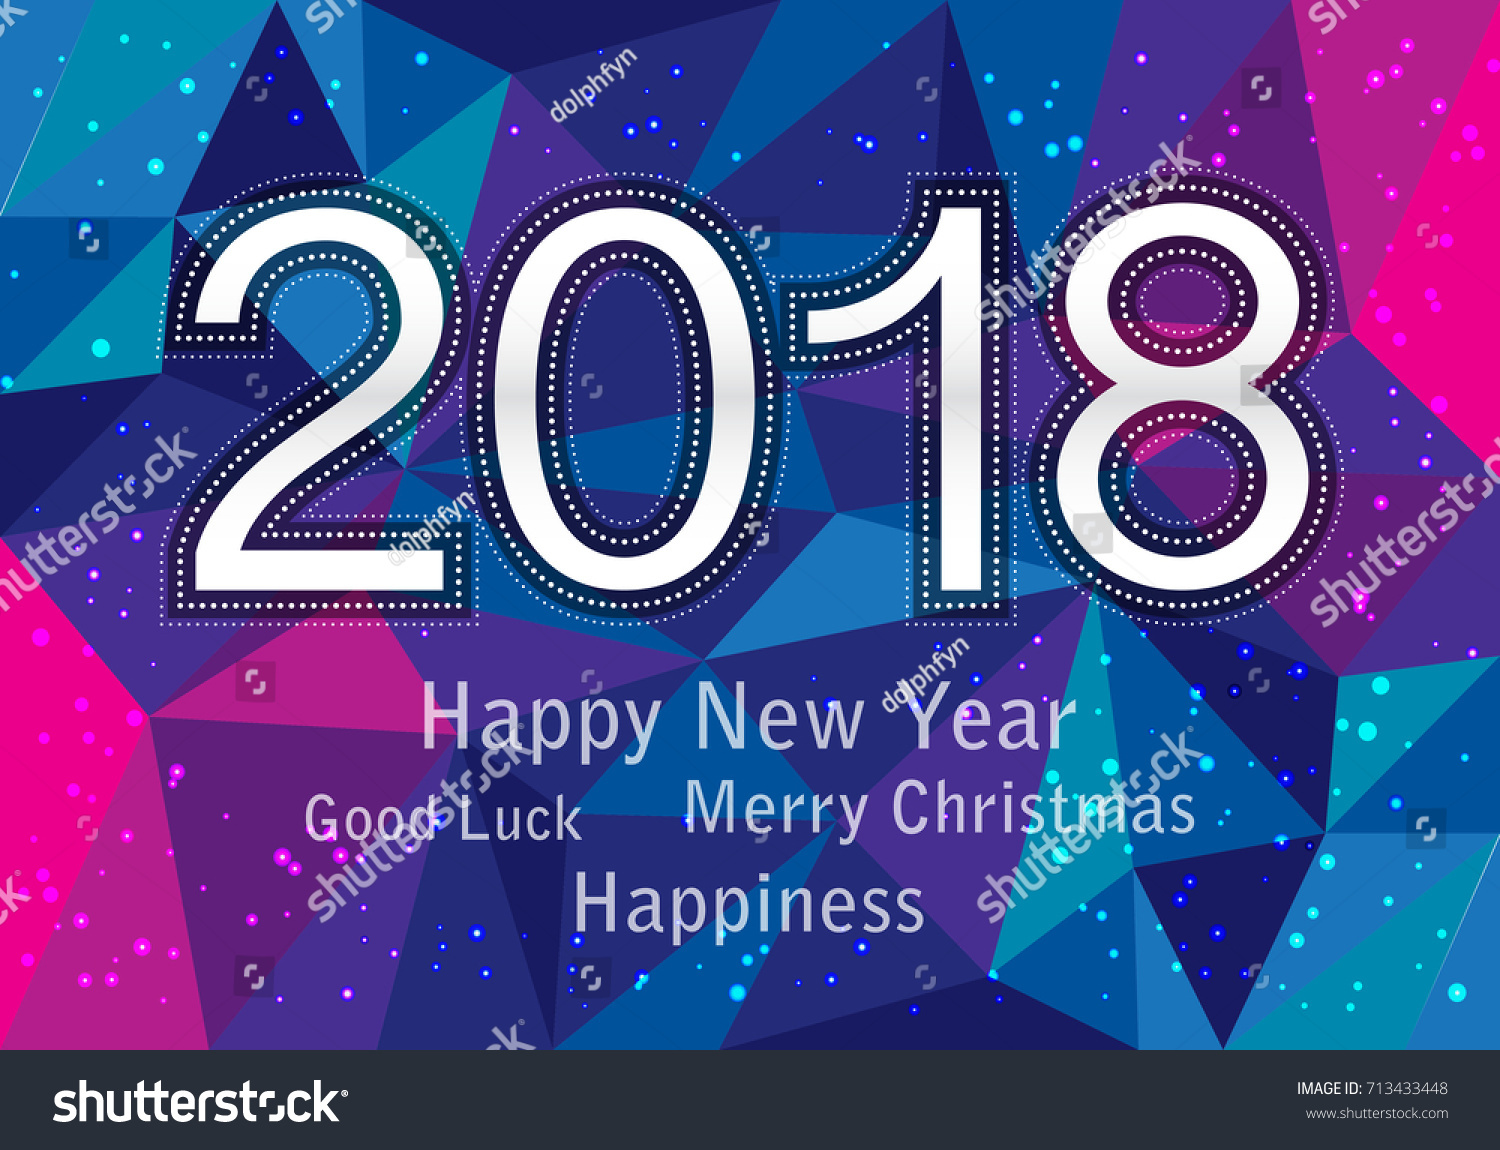 happy new year 2018 wish you all the best as always in this coming new